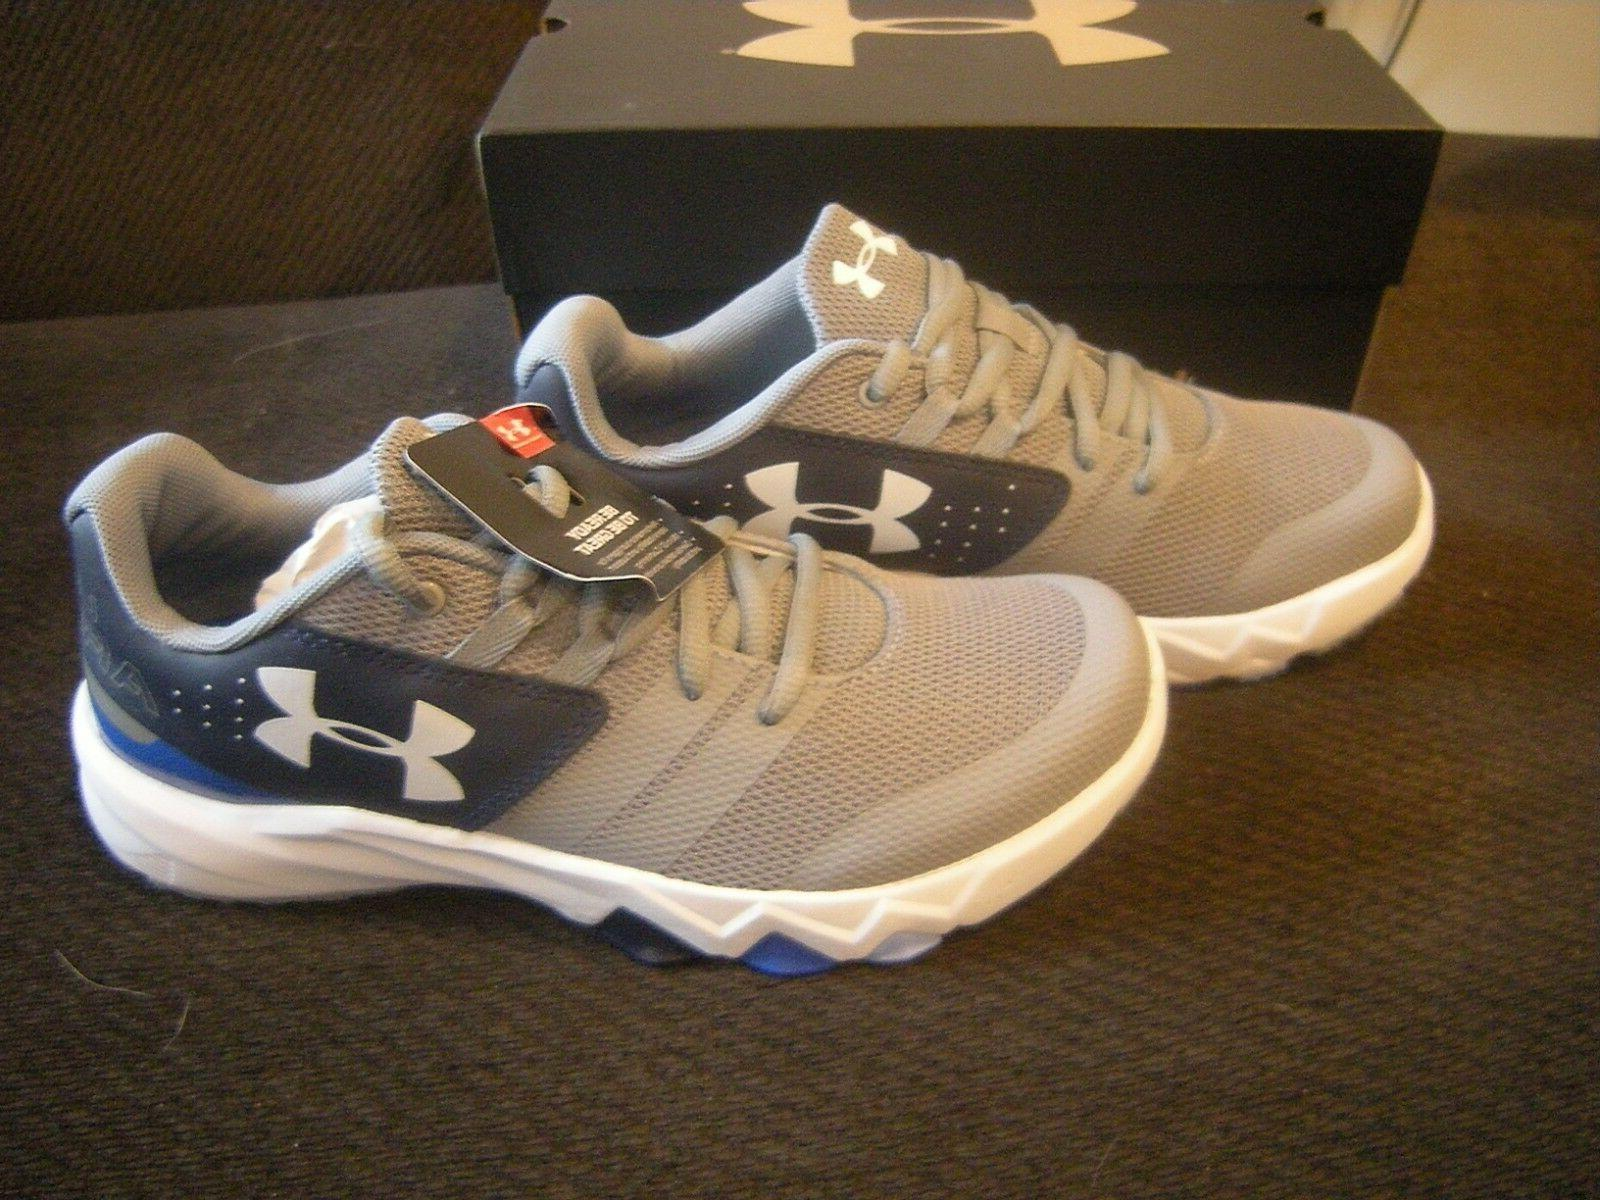 New Boys Gray, White & Blue Under Armour Primed Tennis Shoes